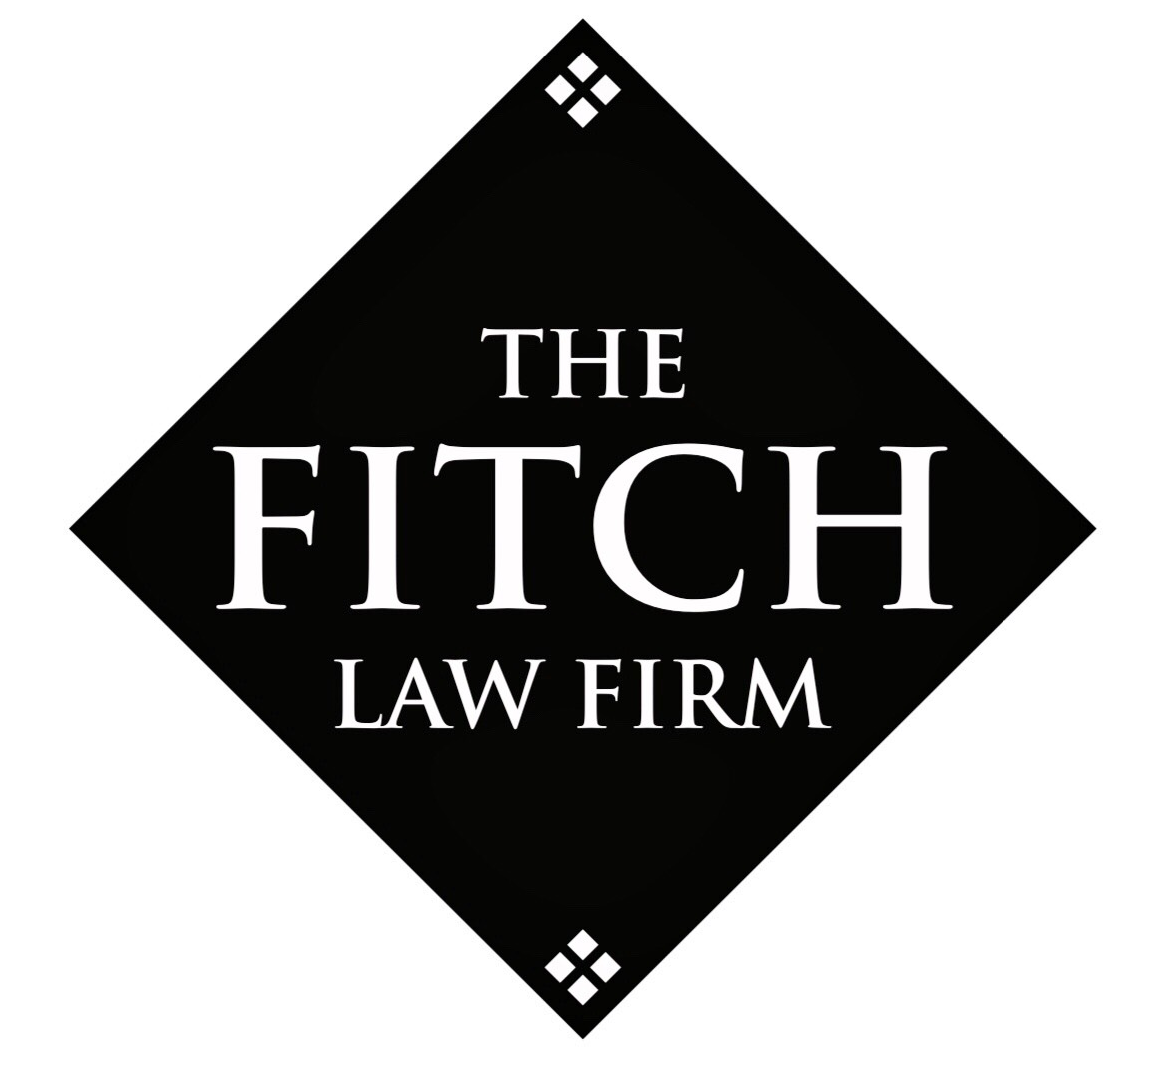 The Fitch Law Firm